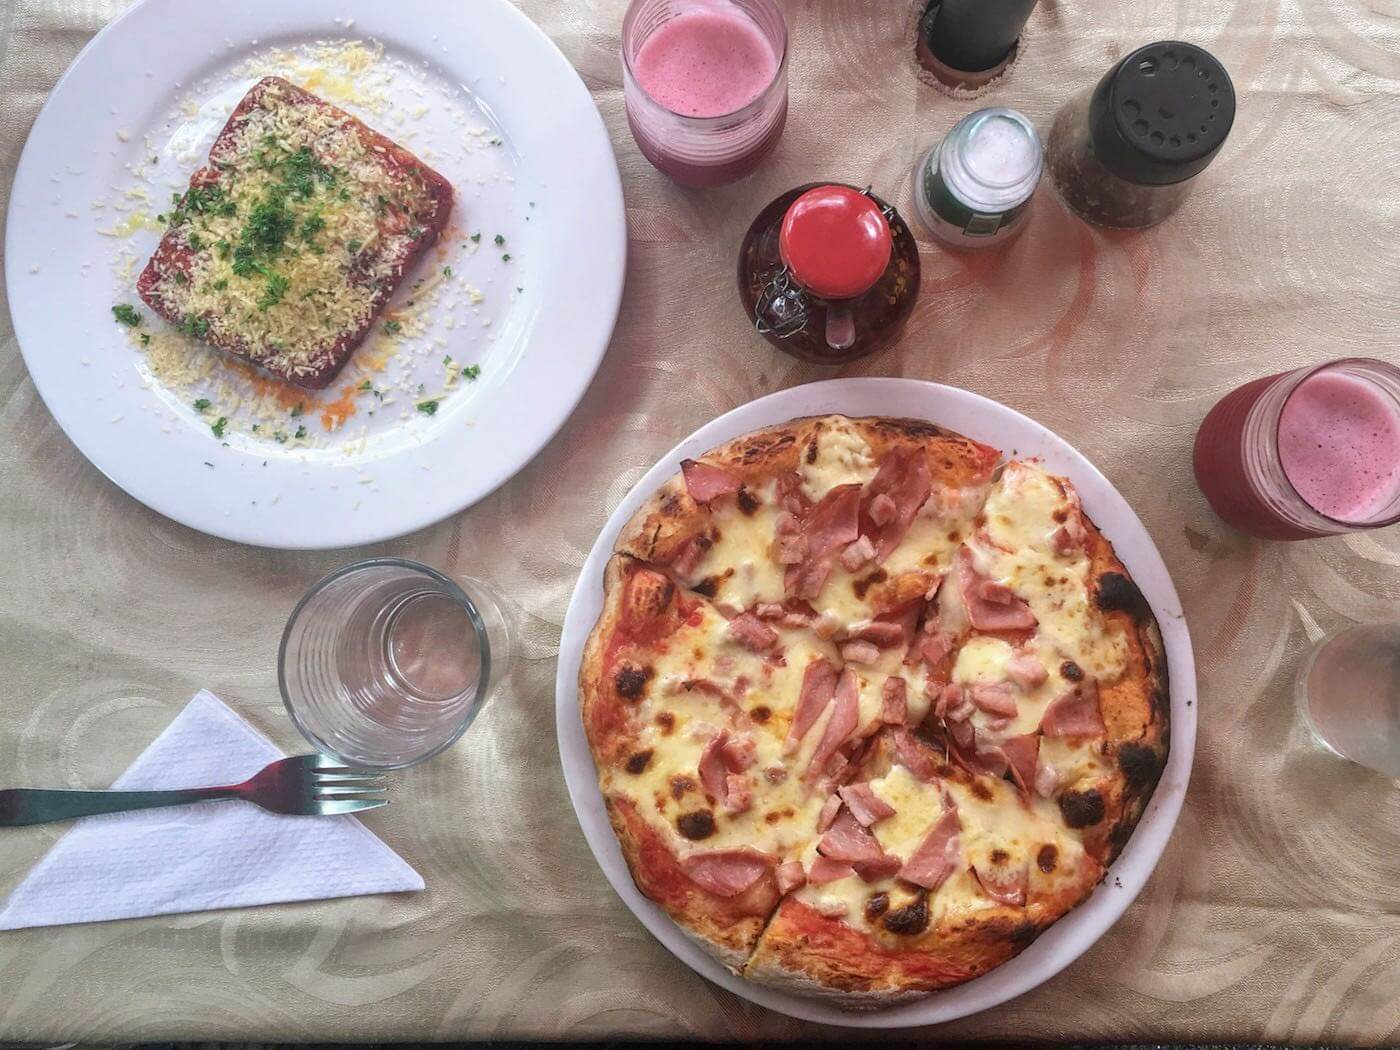 Looking down on our pizza and lasagna from Toscano